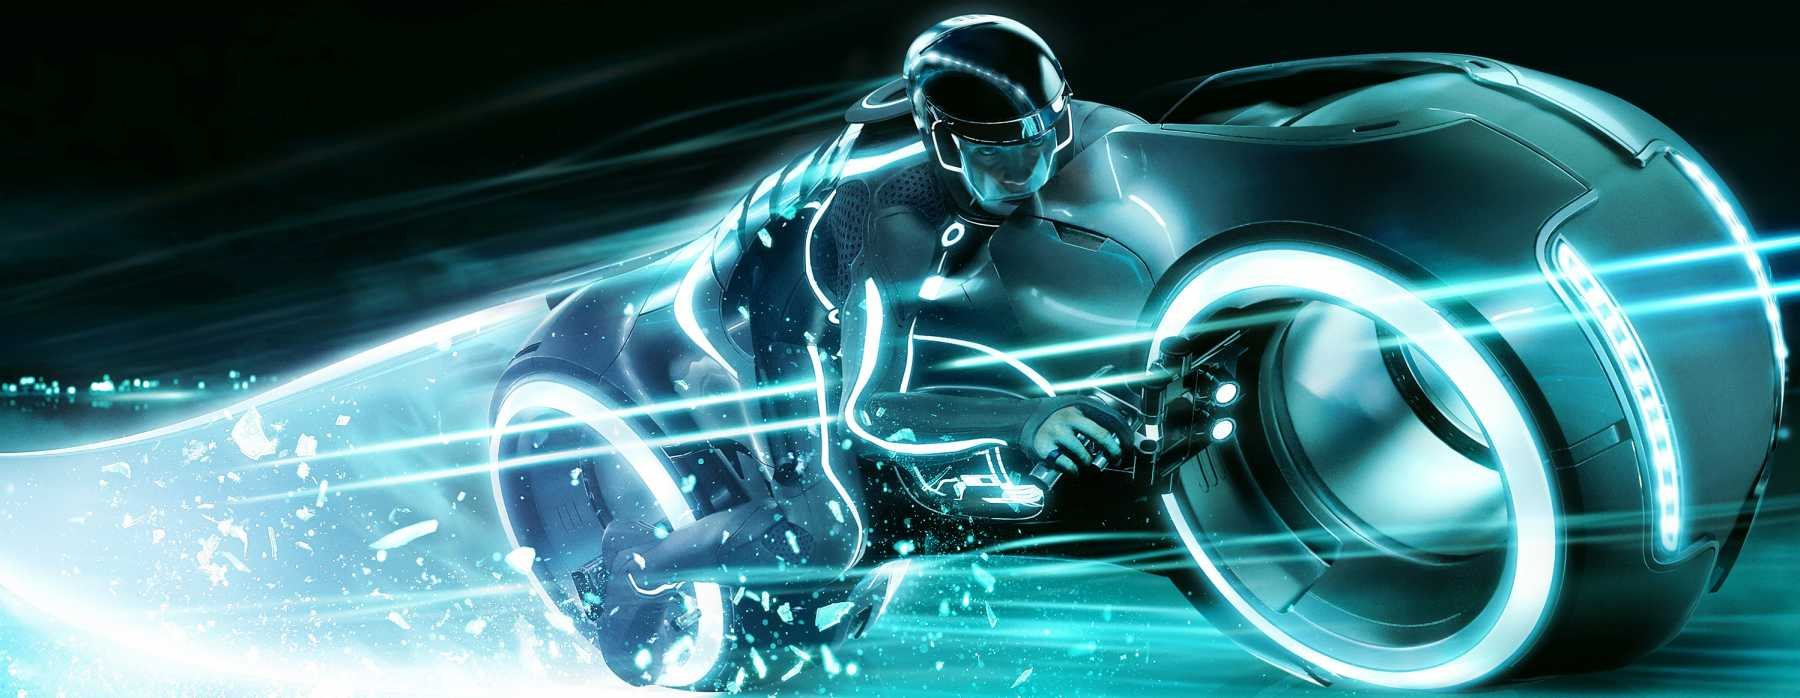 Disney Wants To Reboot Tron With Jared Leto | Reboot Tron